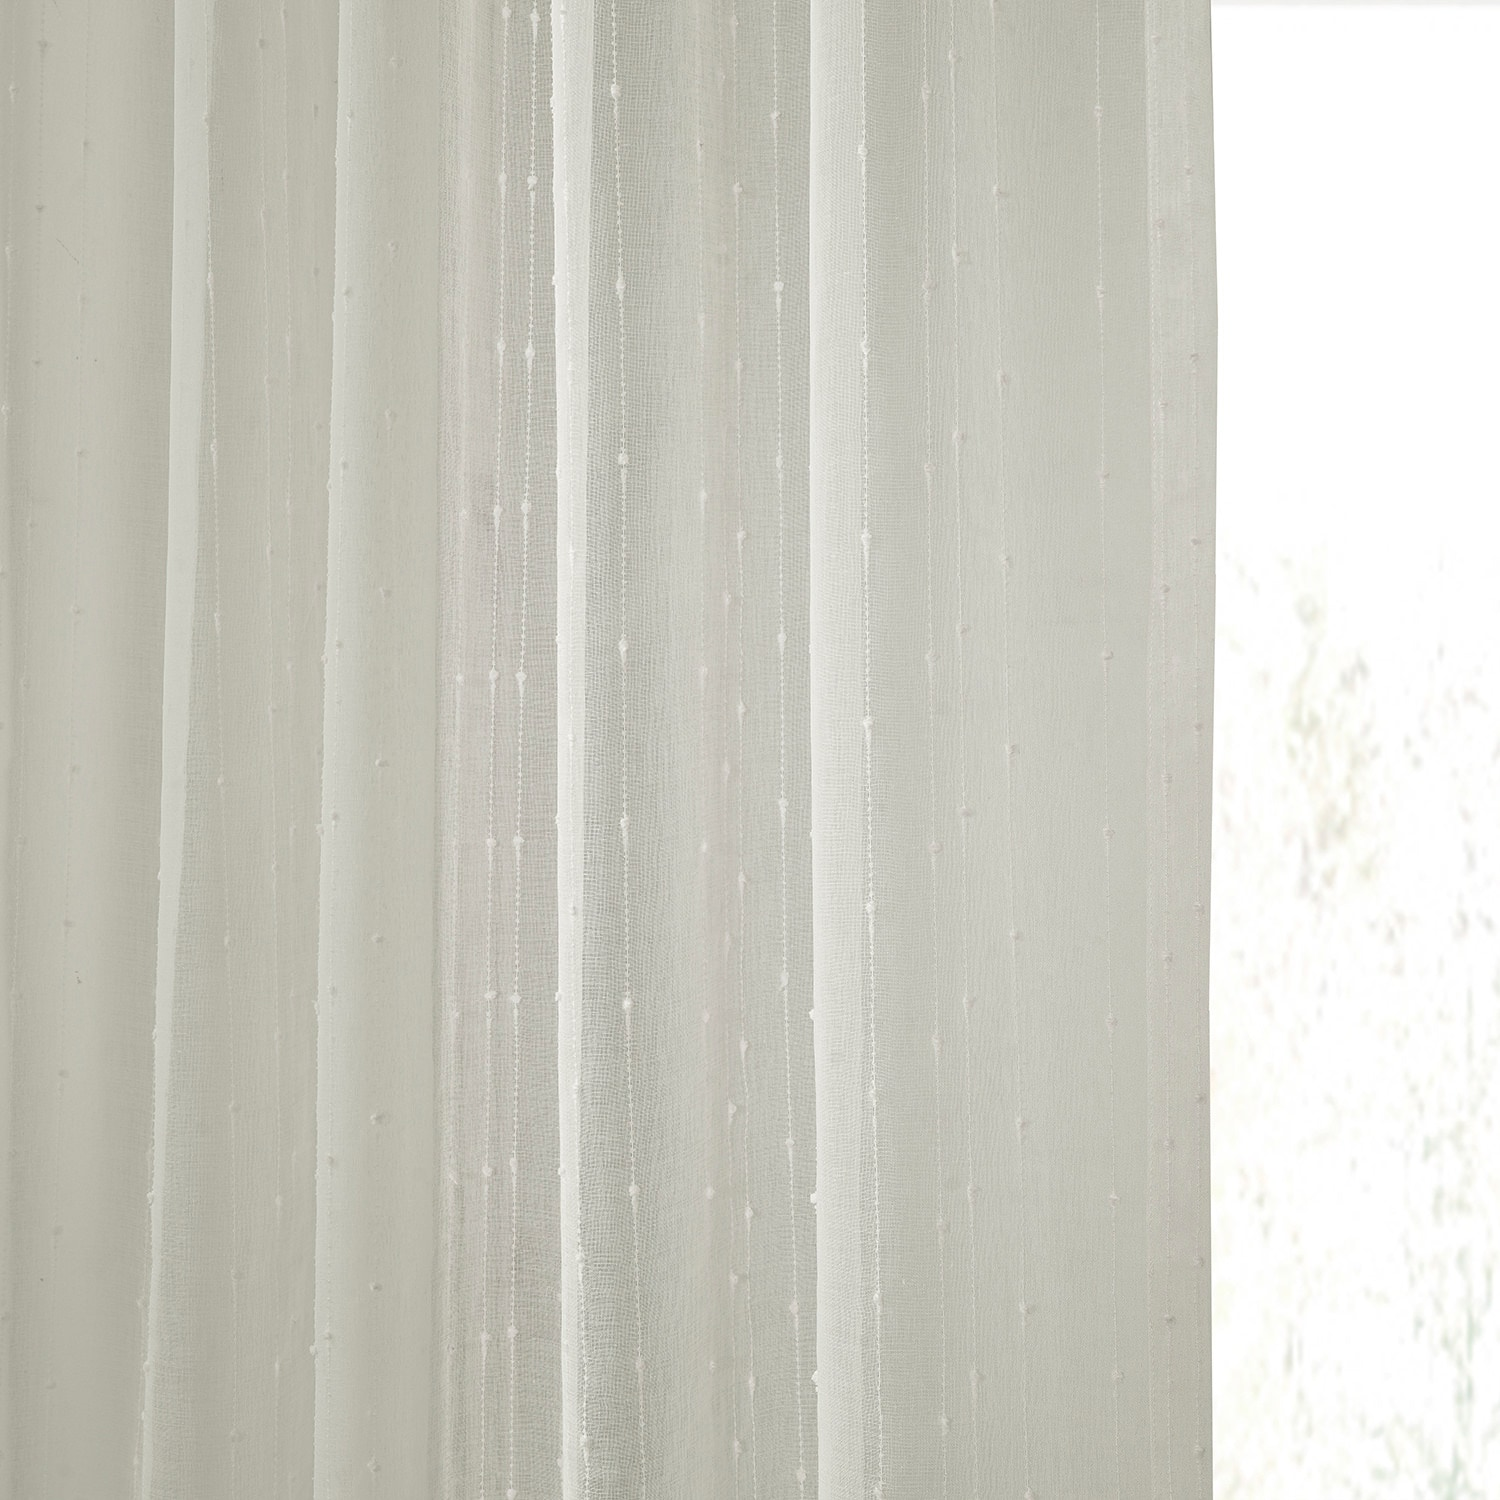 Montpellier Striped Faux Linen Sheer Curtain